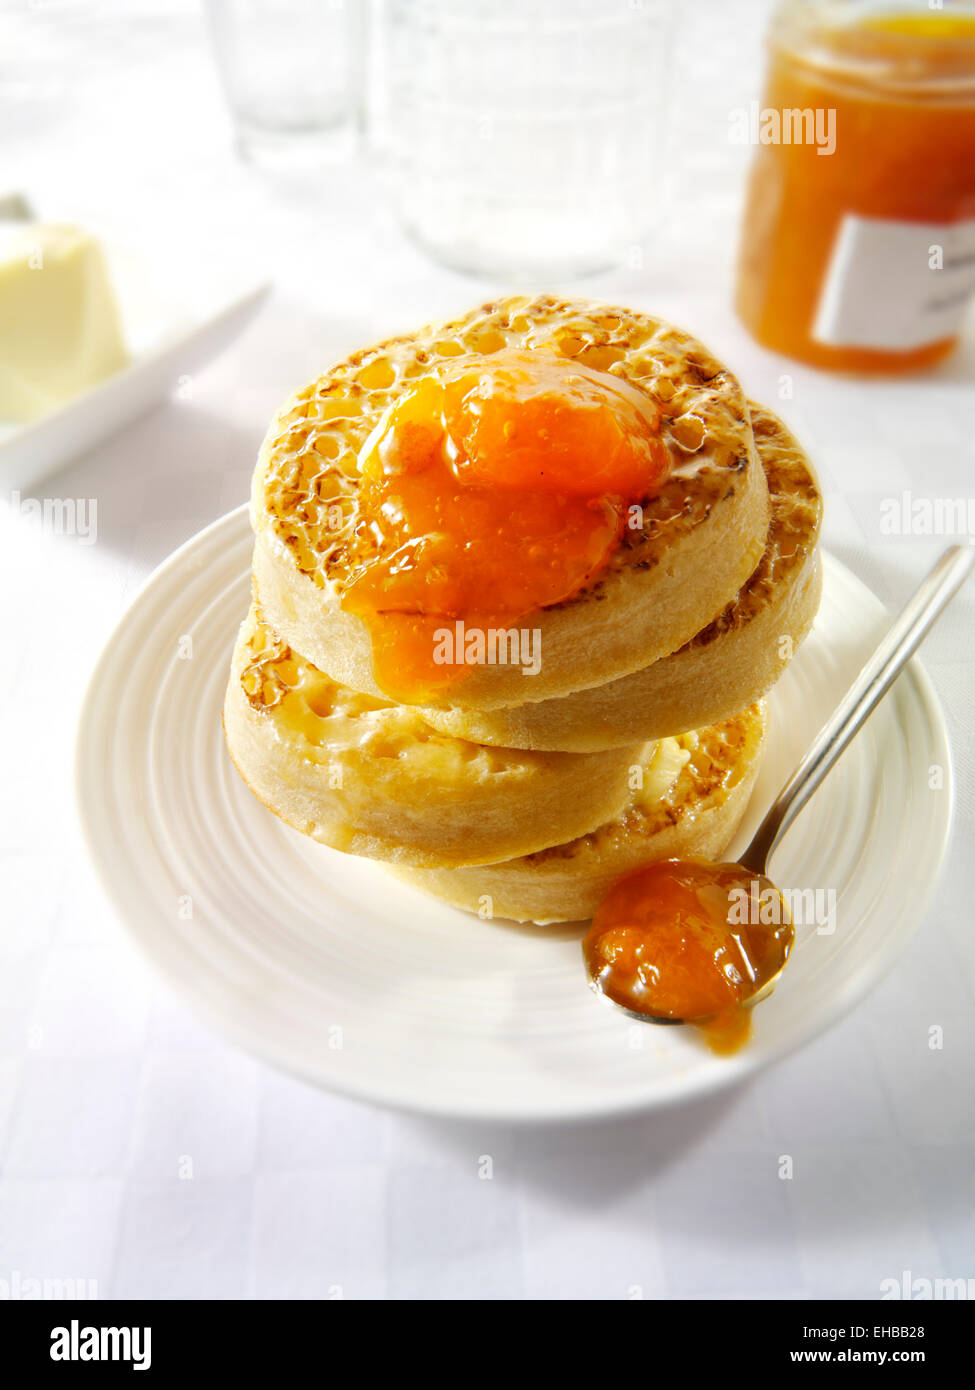 Close up of buttered toasted crumpets with apricot jam ready to eat in a white table setting - Stock Image